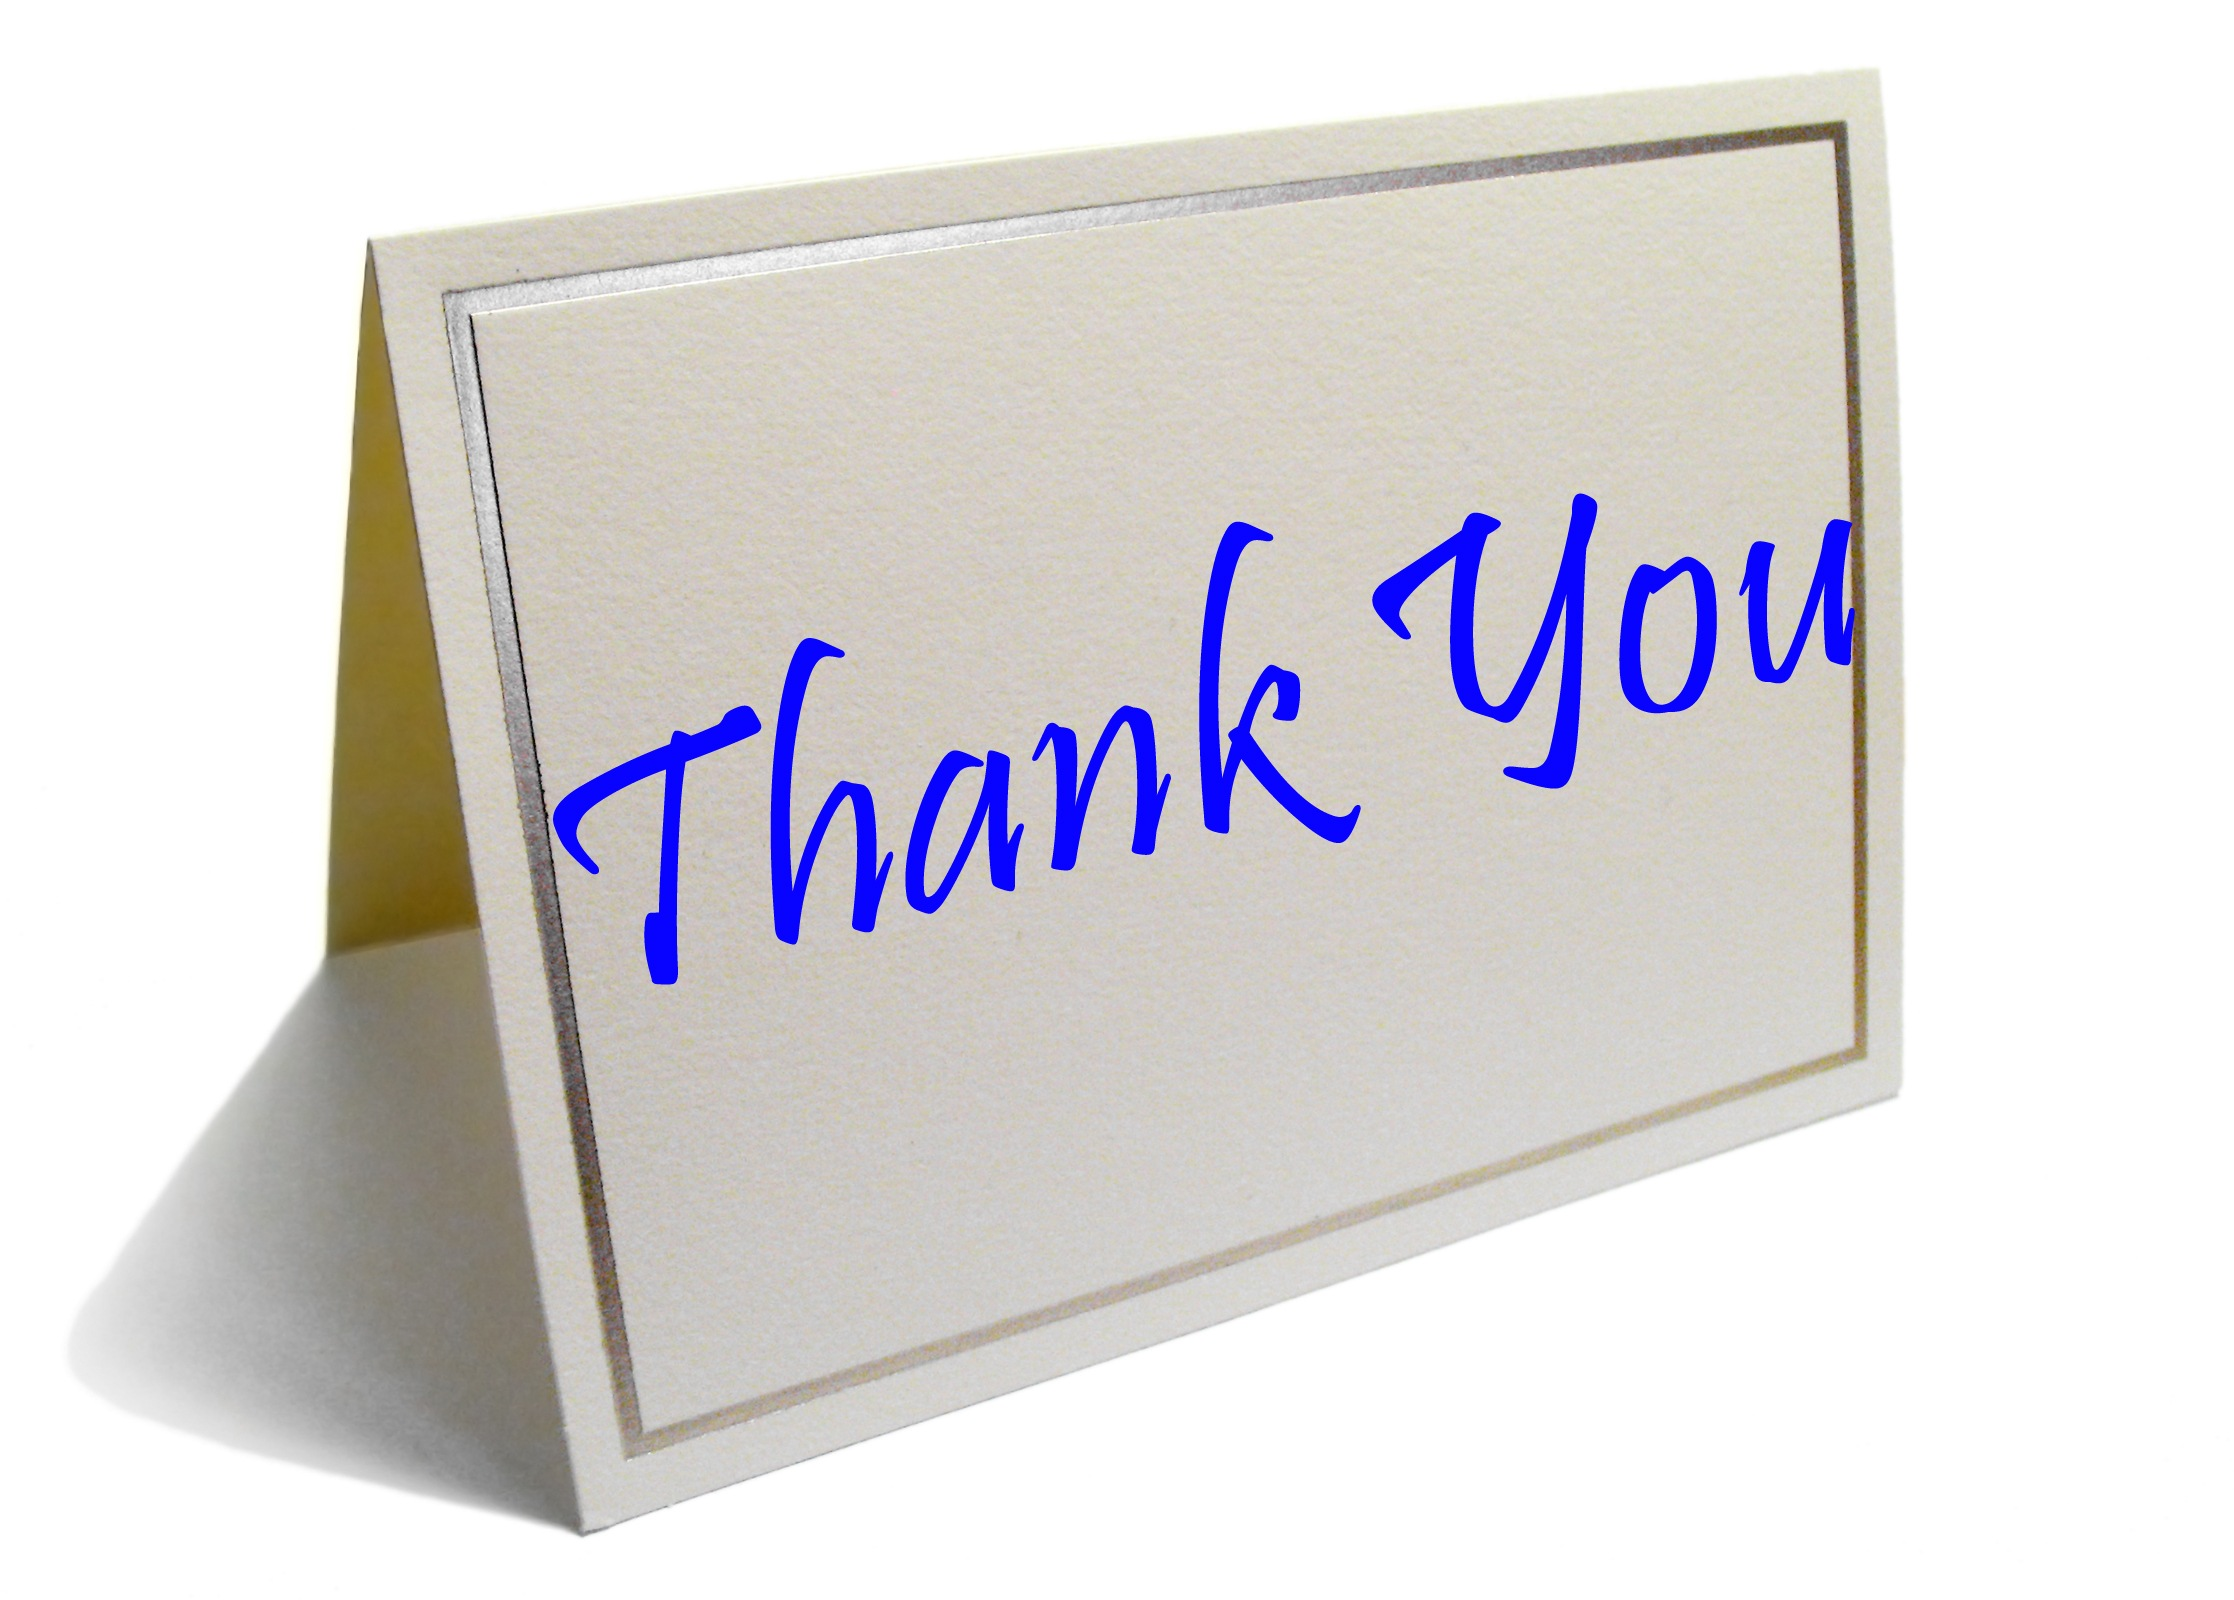 Professional clipart thank you Images Free Panda thank%20you%20images Clipart